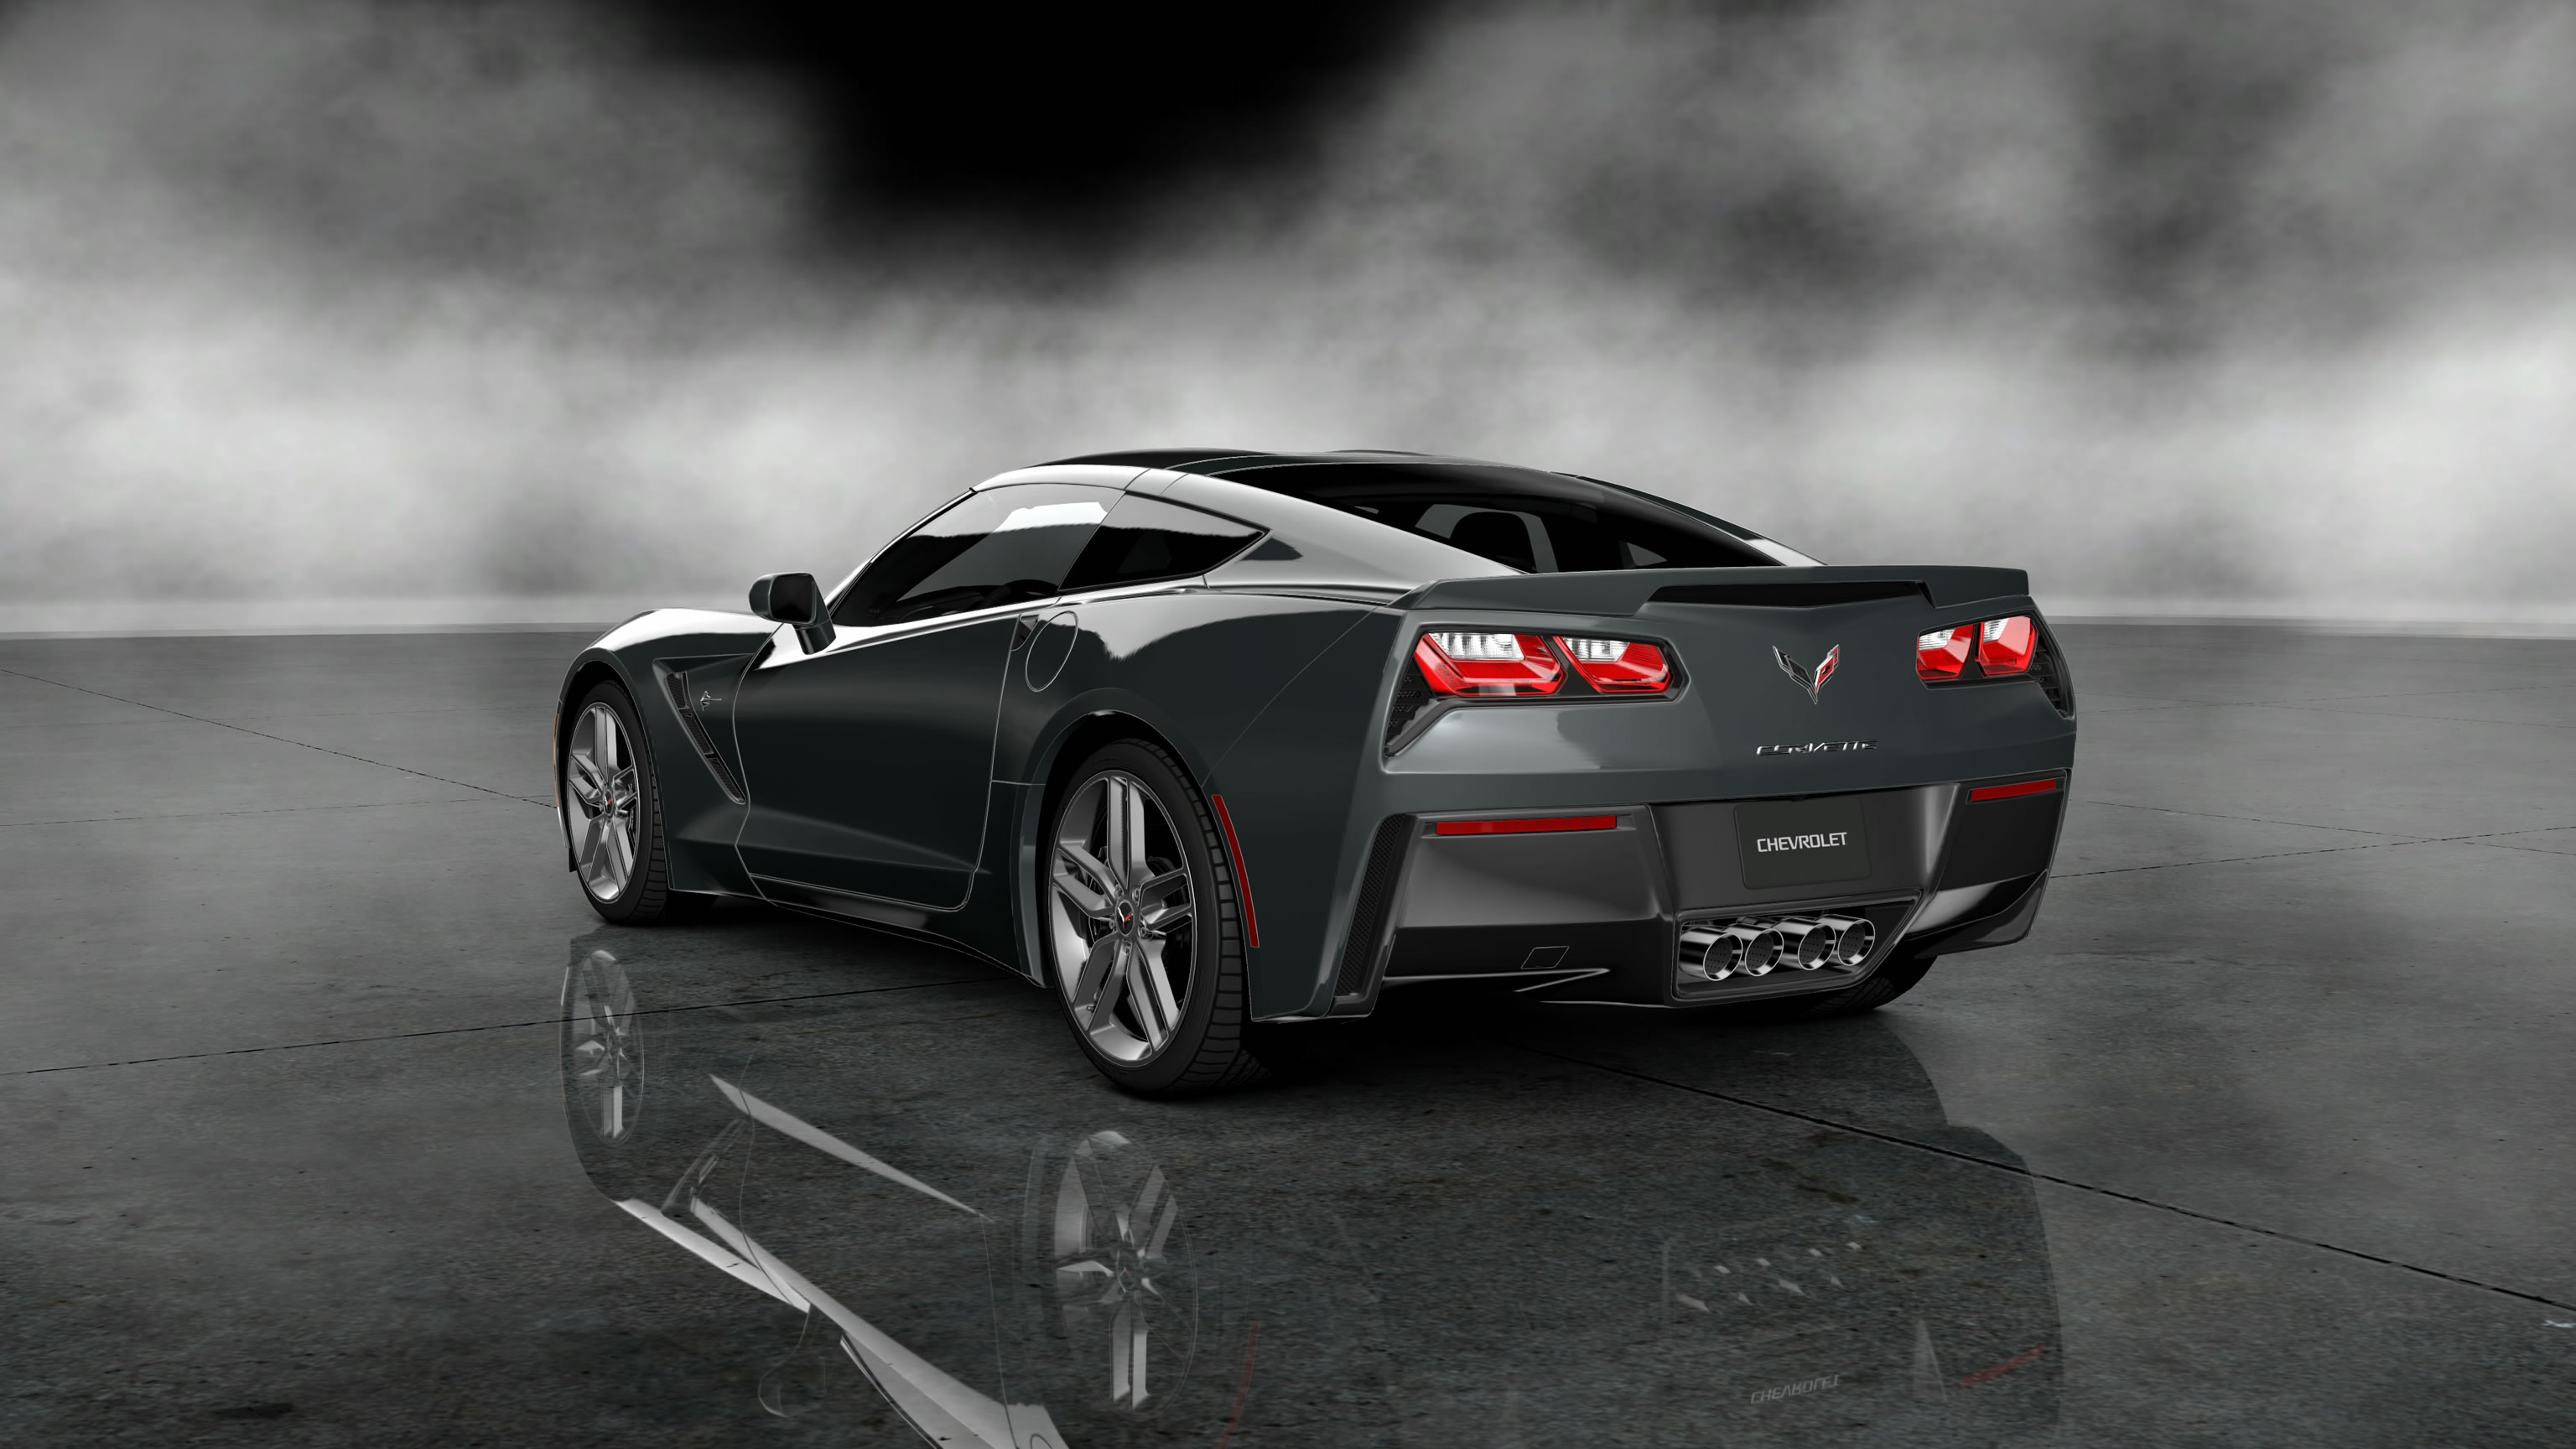 c7 Corvette Logo Wallpaper Corvette c7 2014 Wallpaper 3072x1728